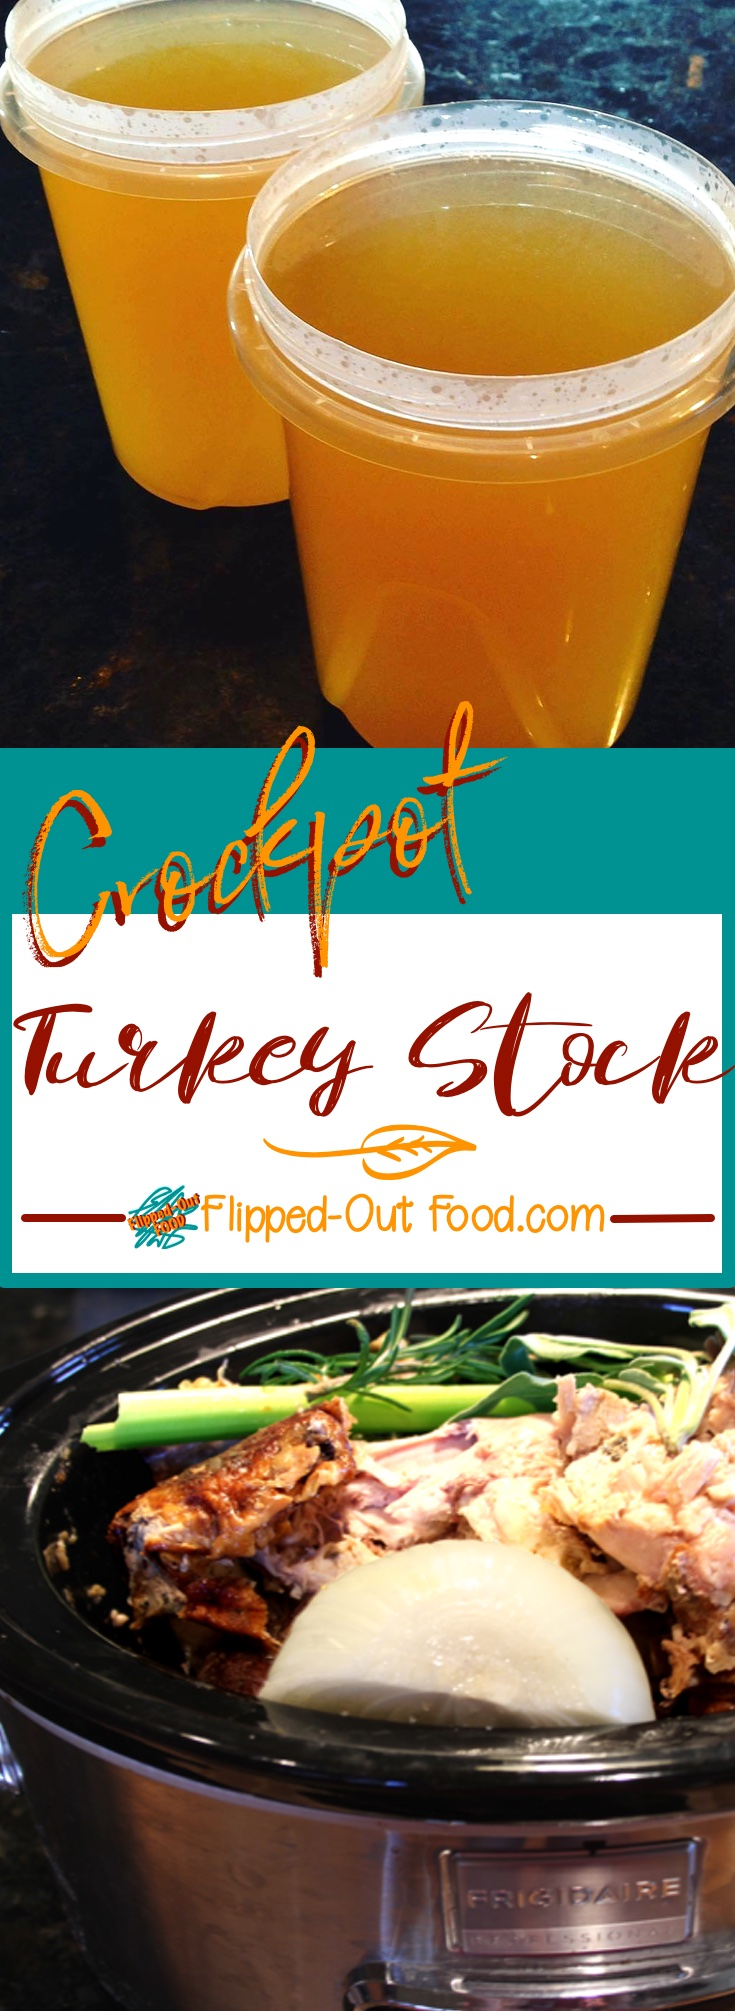 crockpot turkey stock pinterest collage